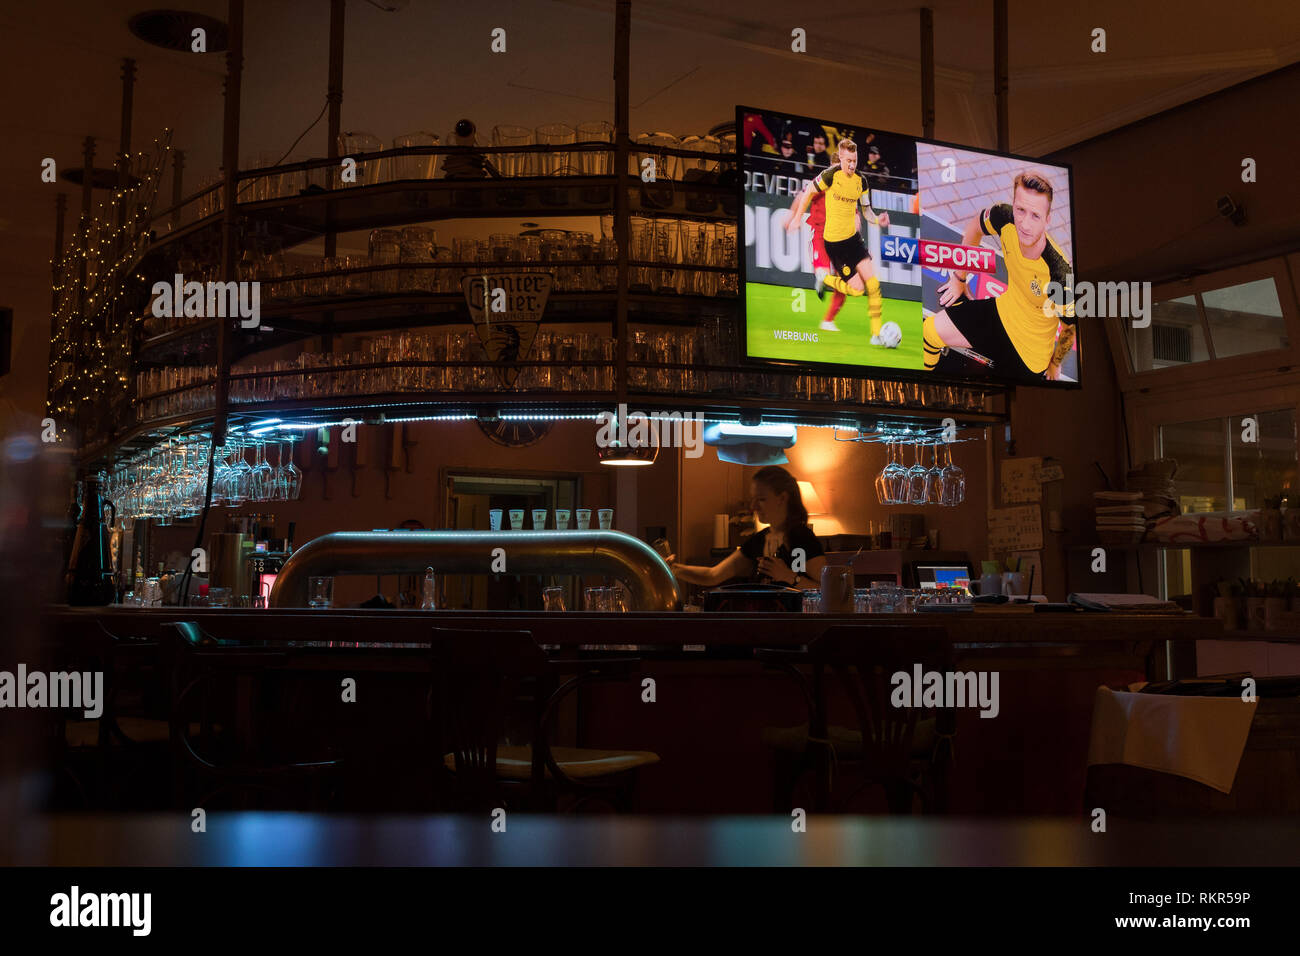 sky sports on tv in German bar - Harmonie - Freiburg im Breisgau - Stock Image